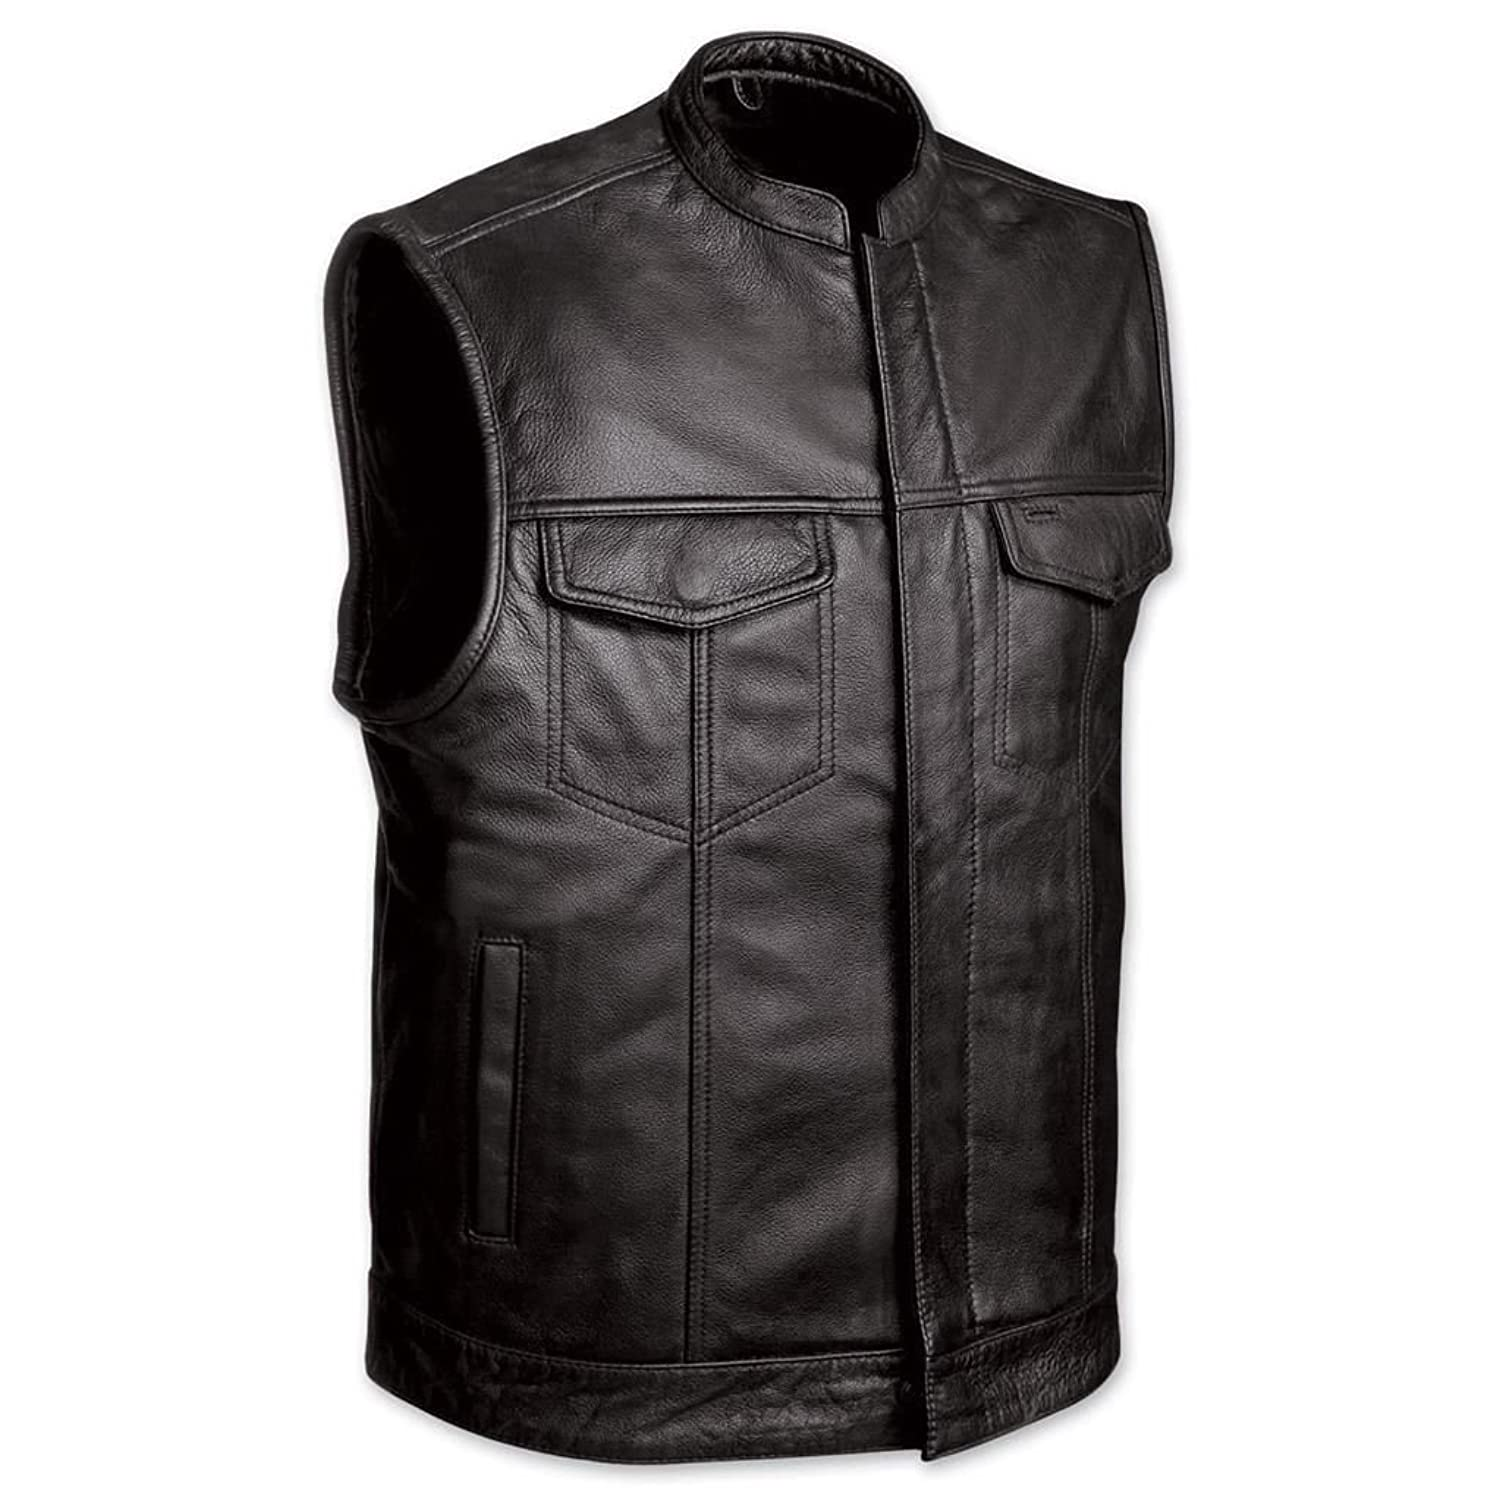 MEN'S MOTORCYCLE SONS OF ANARCHY BLACK LEATHER VEST W/GUN CELL